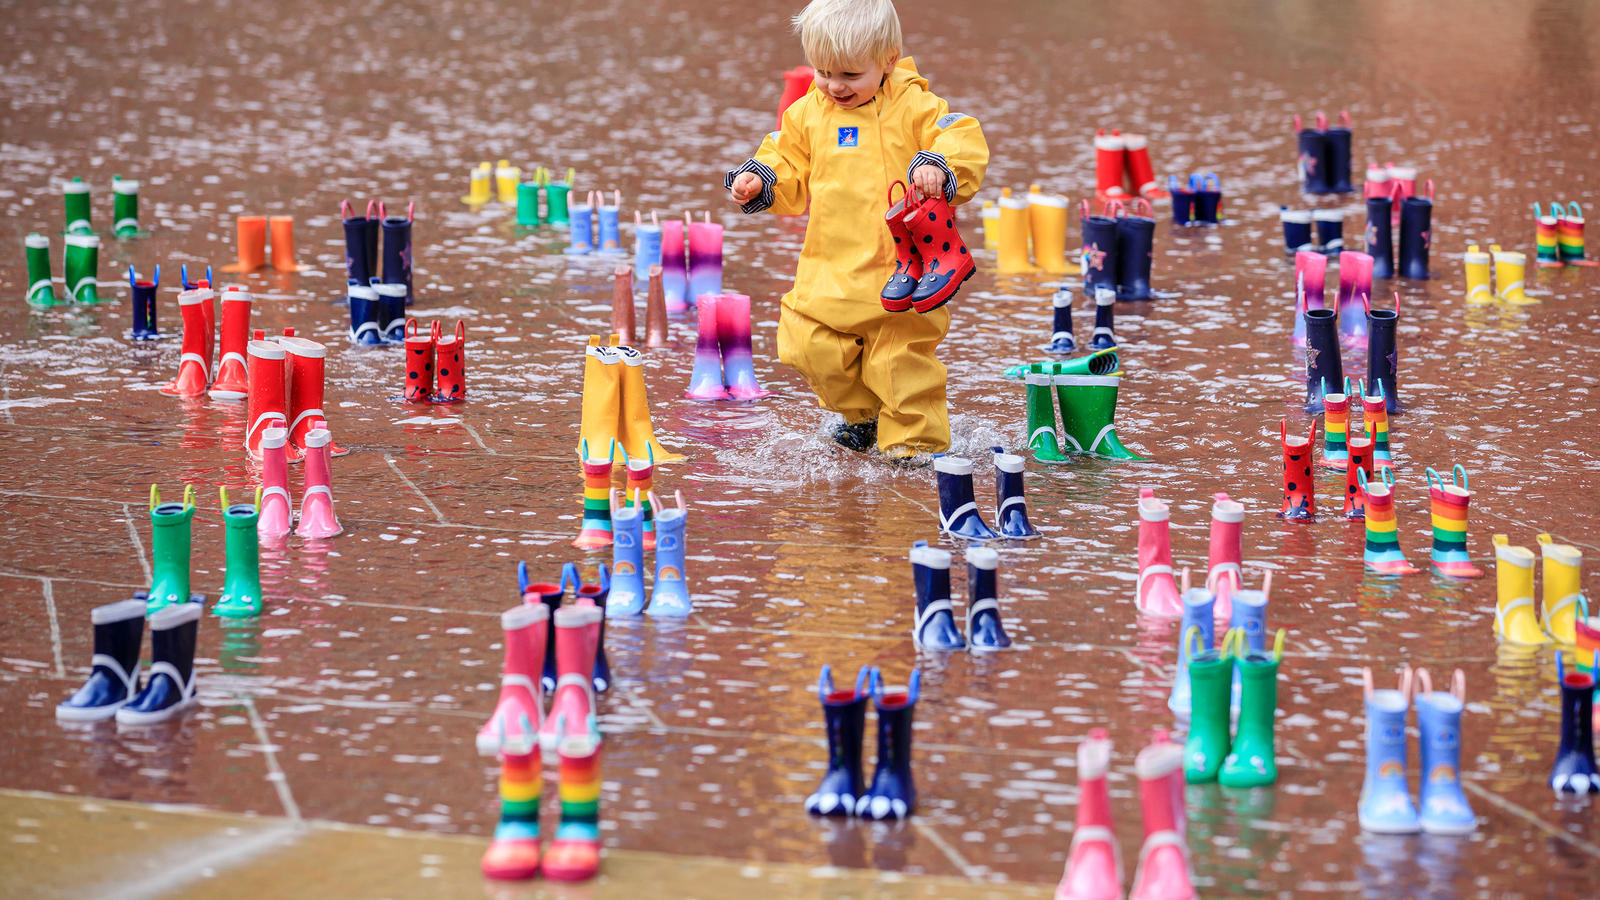 2-year-old Archie from London admires 144 pairs of brightly coloured wellies and splashes in the pond in the garden of London's V&A